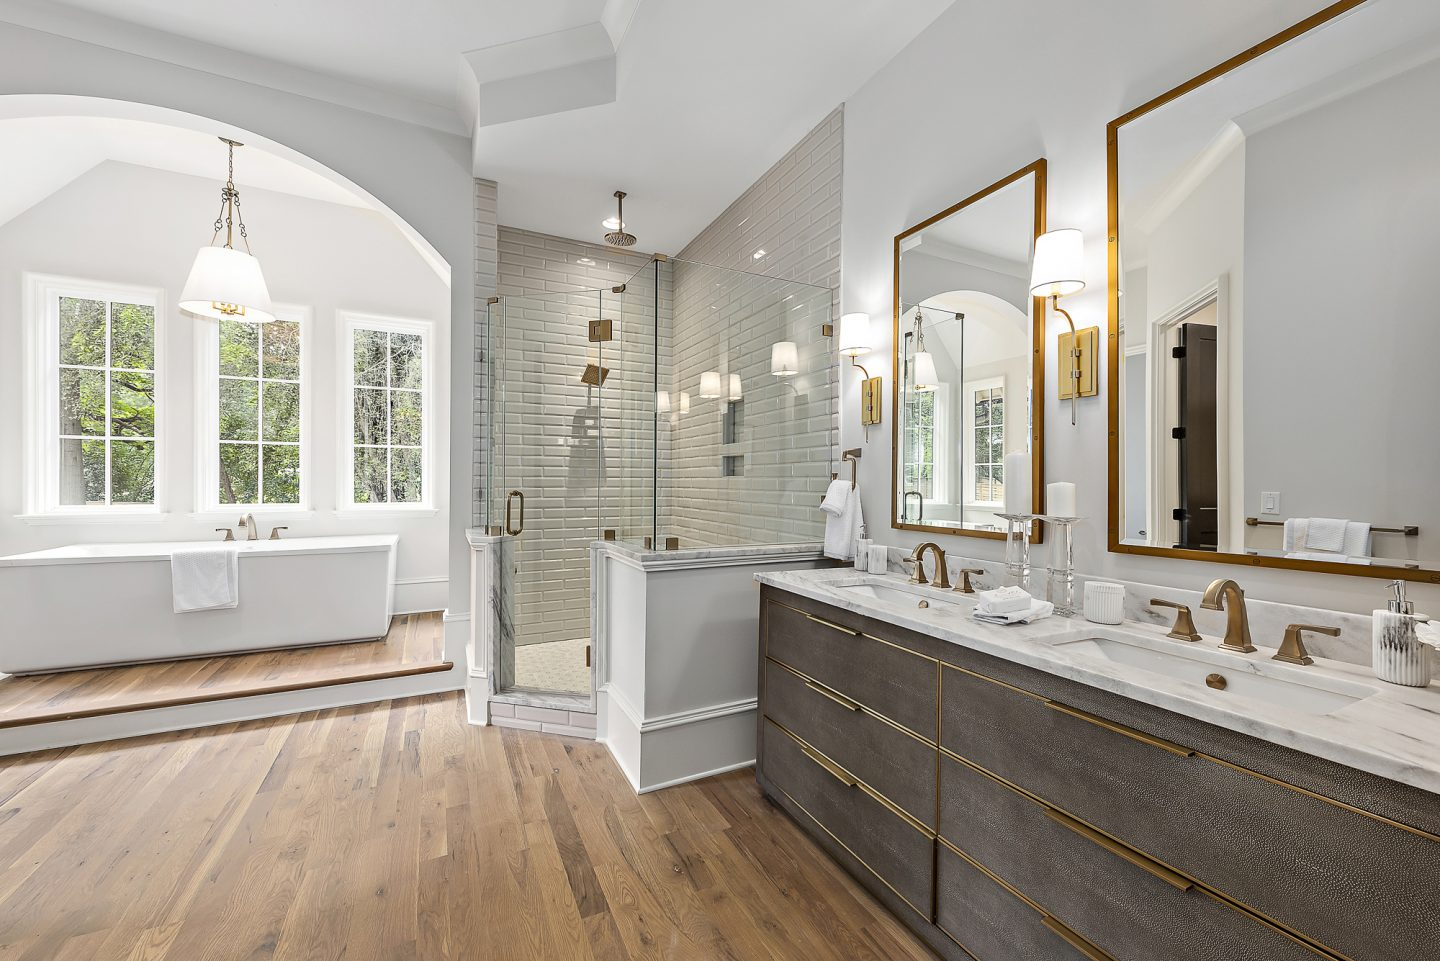 luxury master bathroom - Pike Properties - Charlotte, NC - Luxury Home Builder